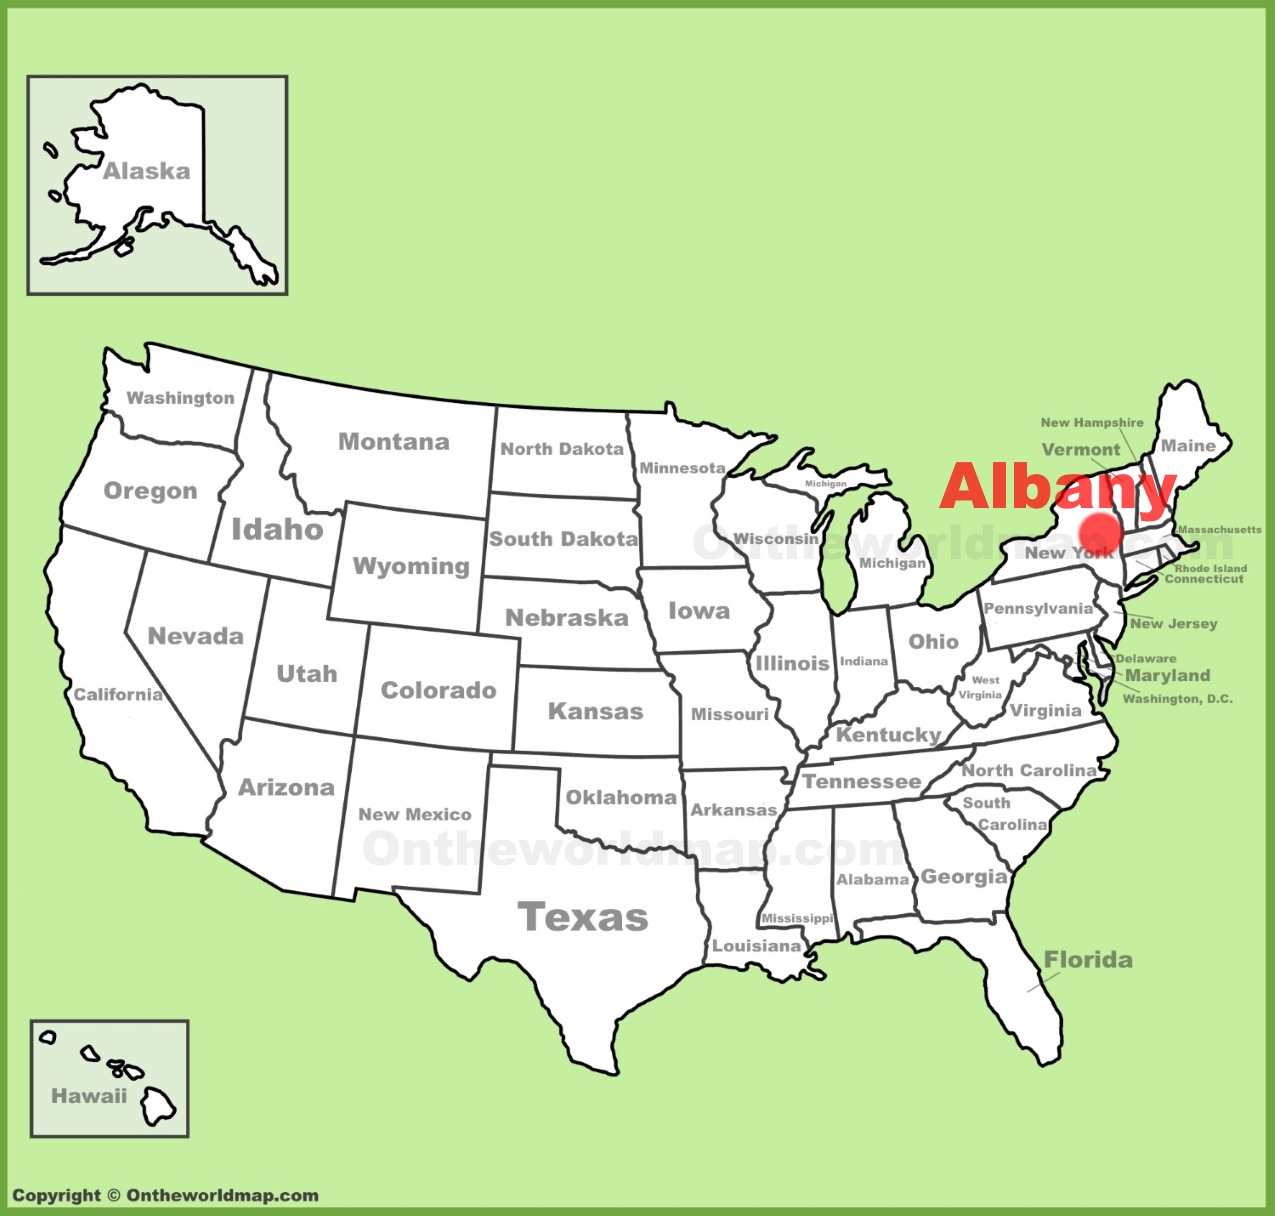 Albany location on the US Map